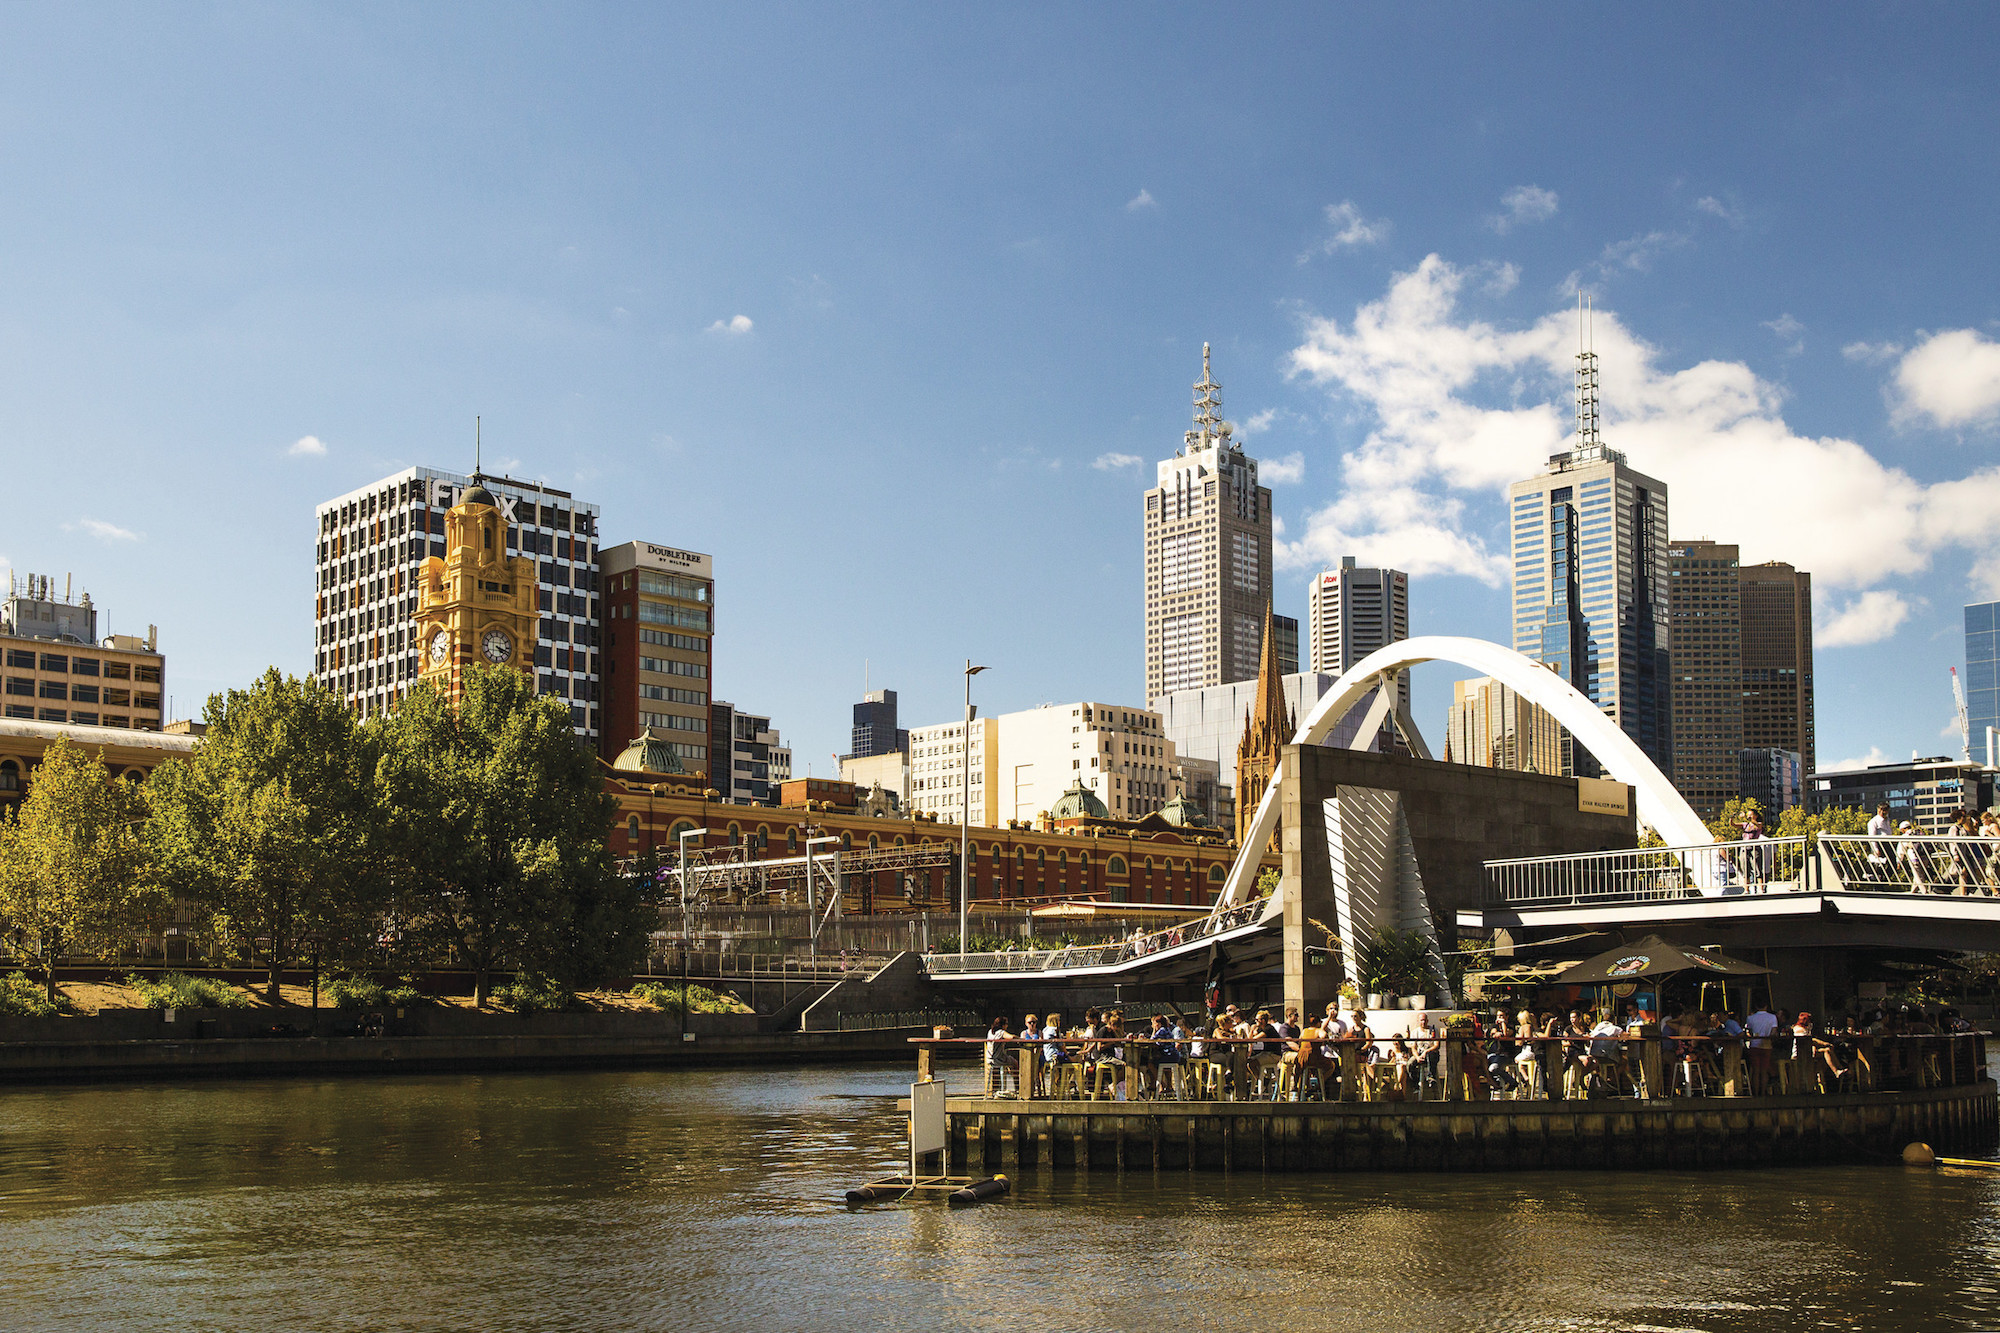 50 things to do in Melbourne before you die